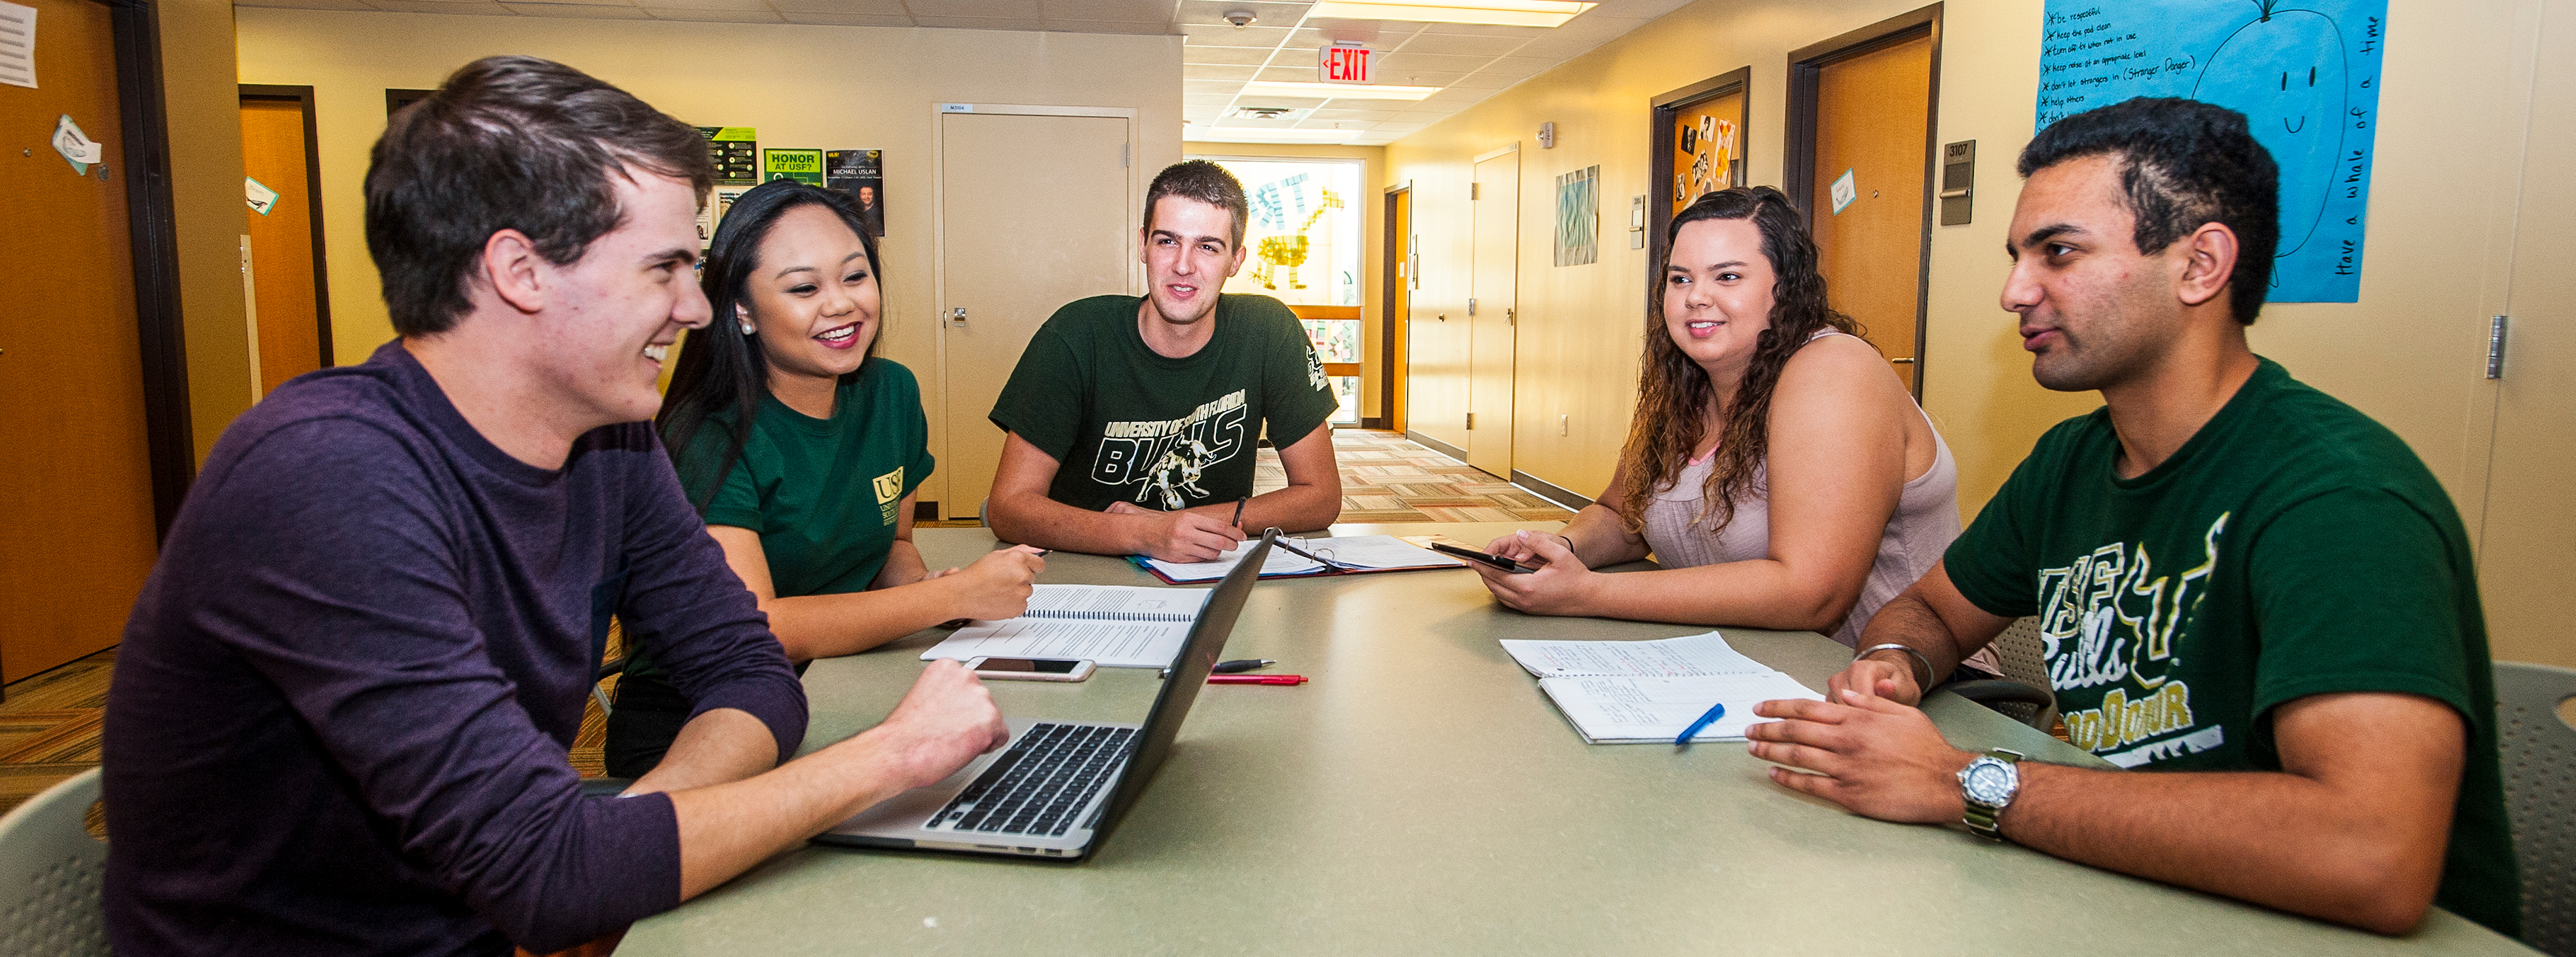 Honors College | University of South Florida